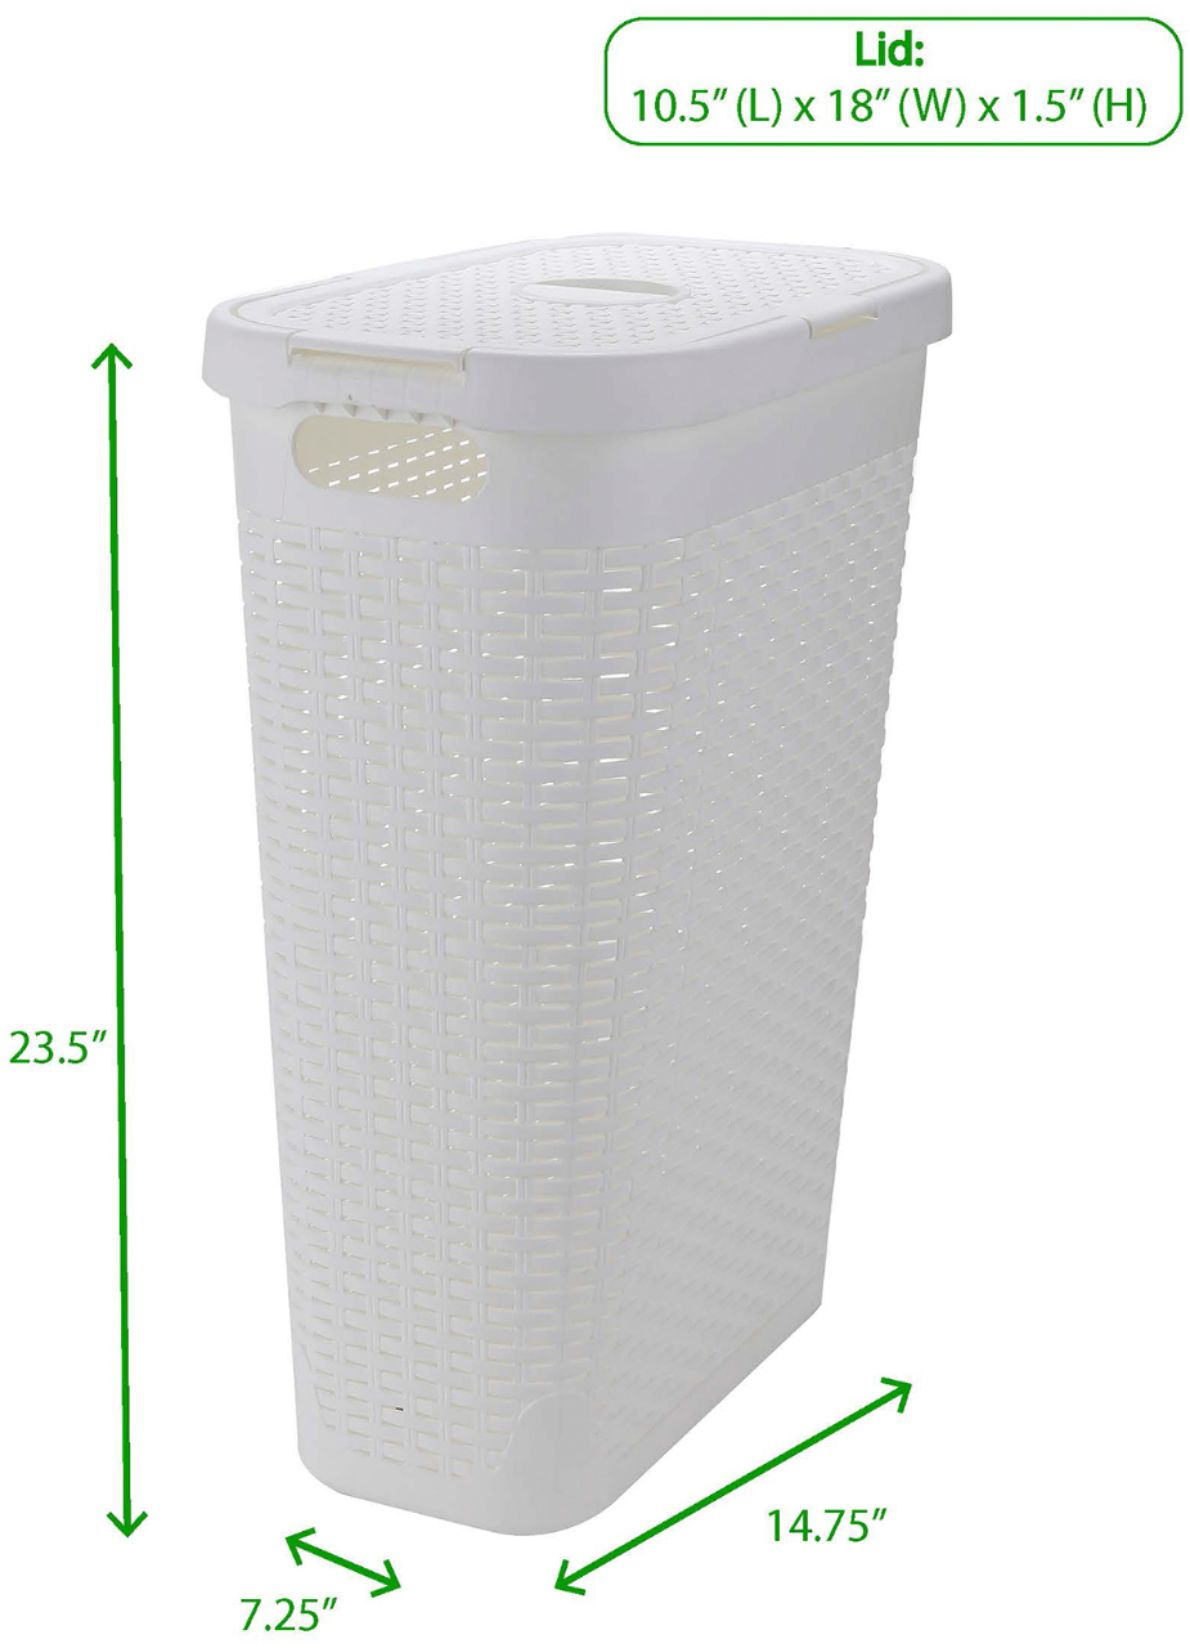 Mind Reader 40 Liter Slim Laundry Basket Laundry Hamper With Cutout Handles Washing Bin Dirty Clothes Storage White Tbhamp40 Wht Best Buy